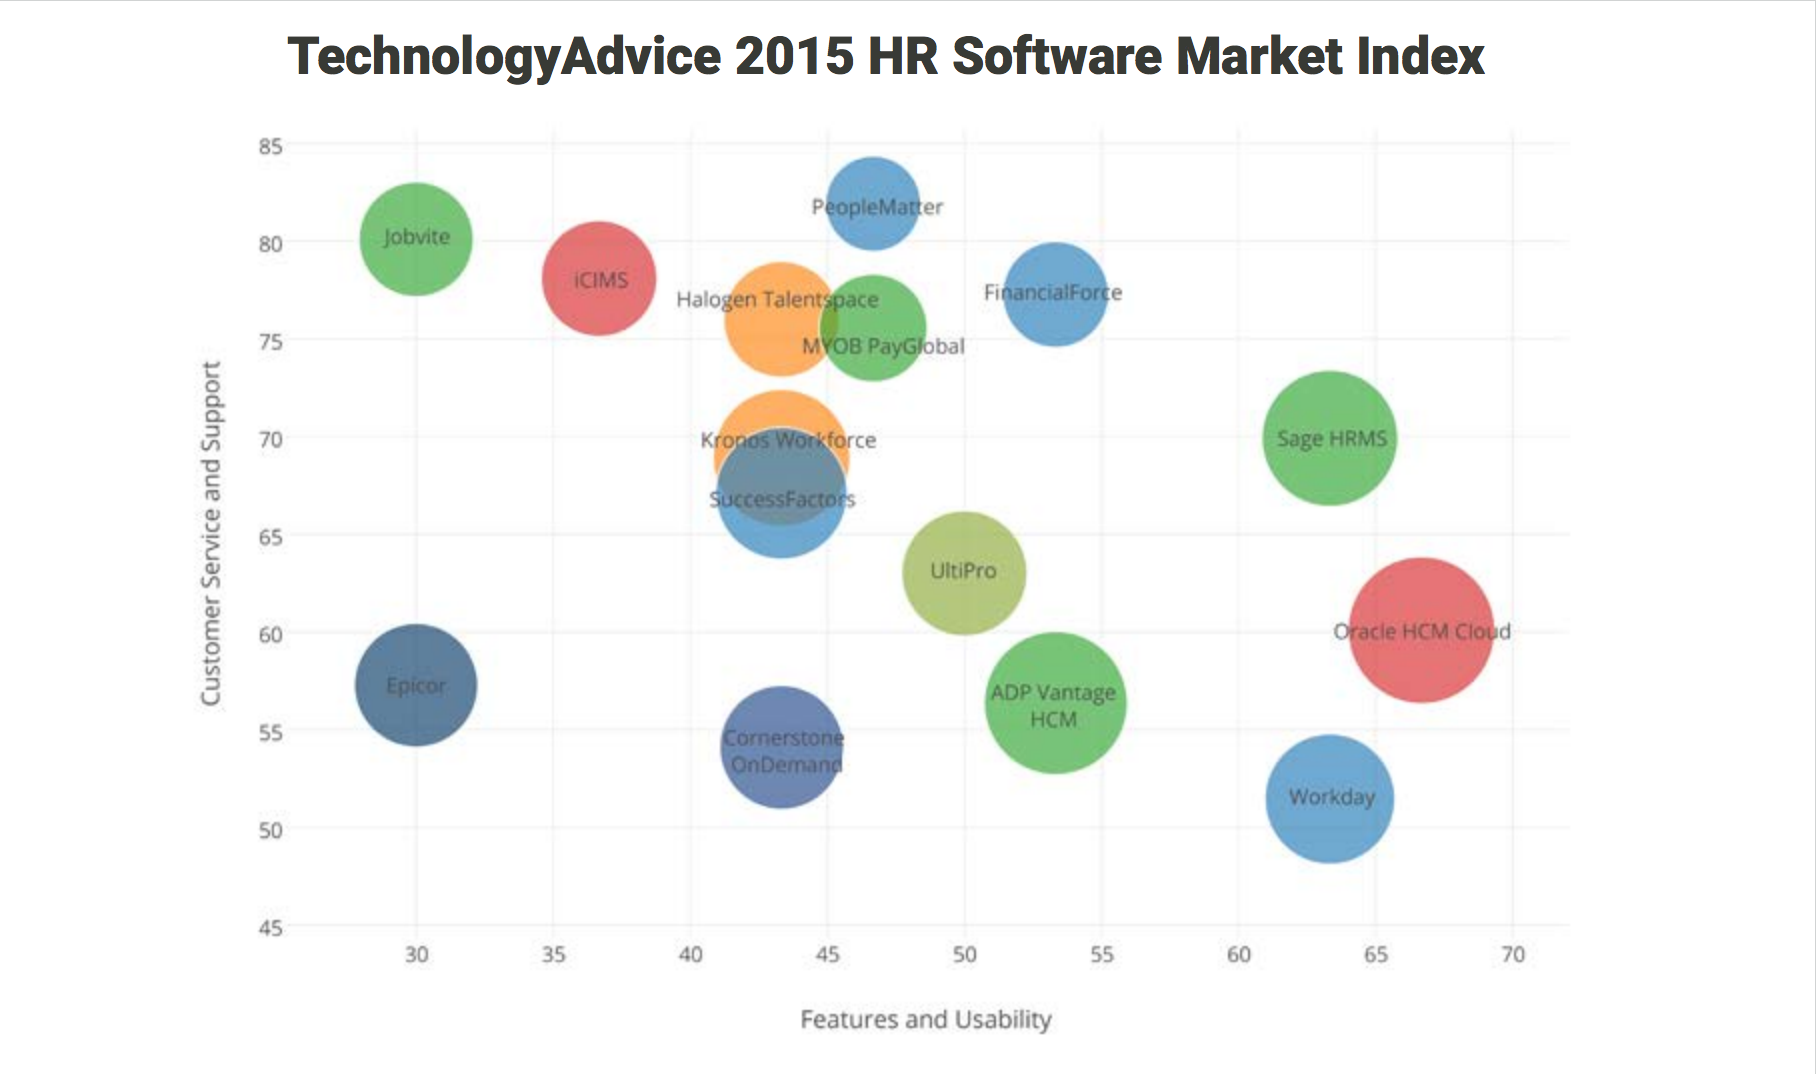 competitive positioning map of human resource software providers